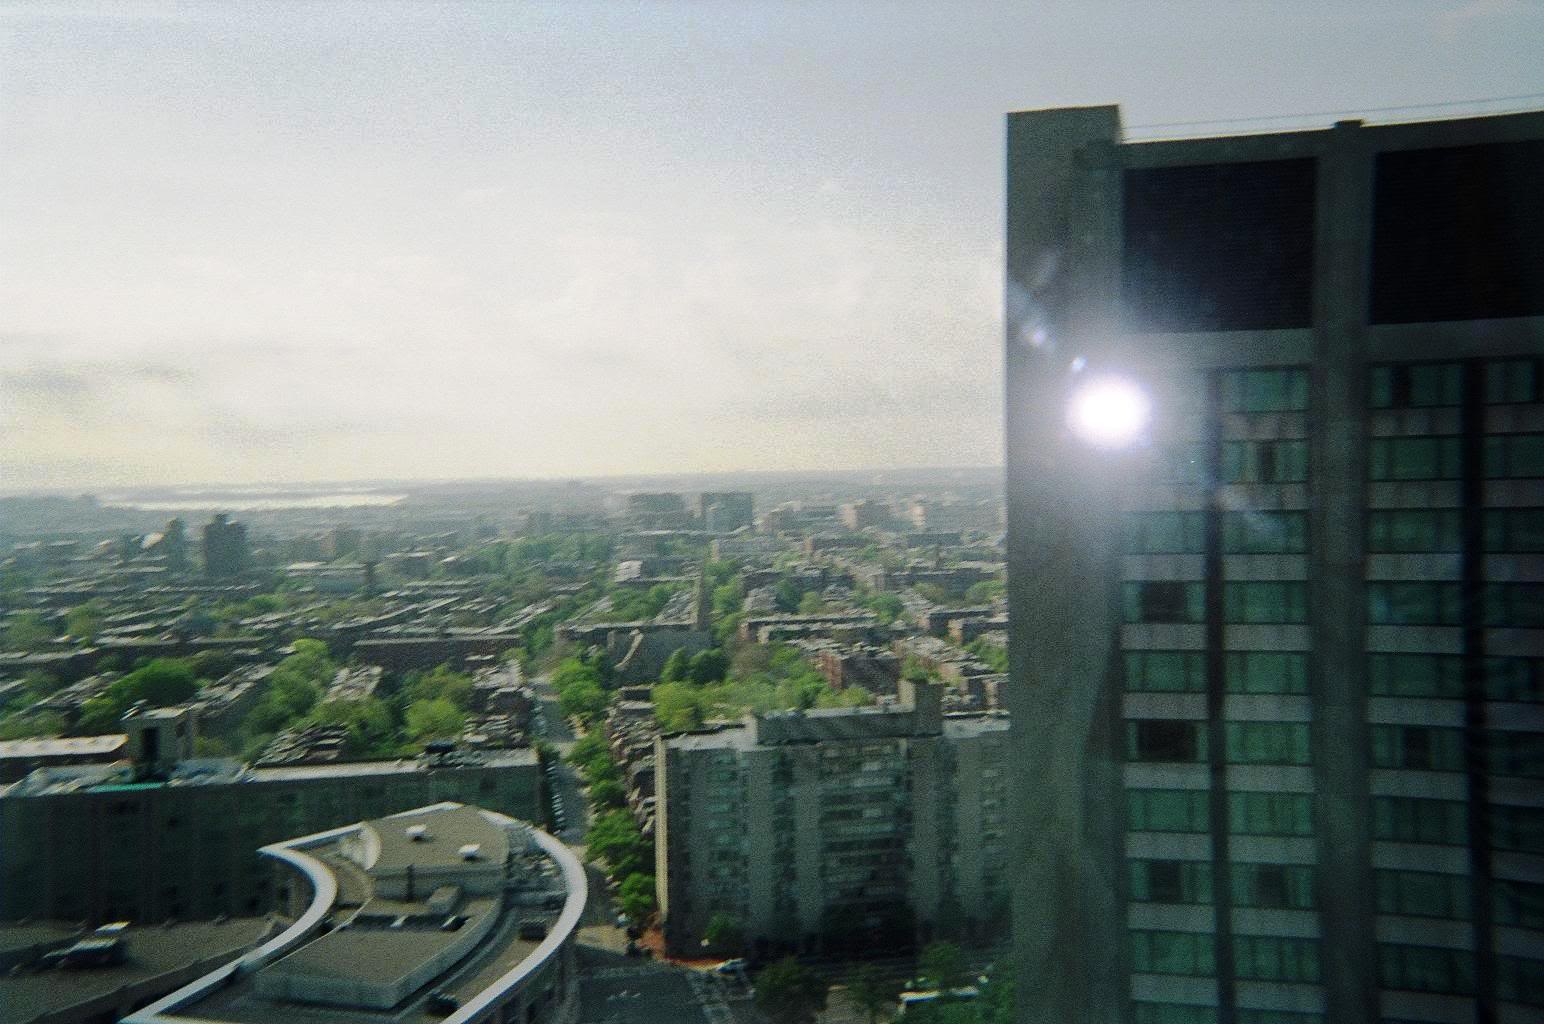 Awsomeveiw.jpg Veiw of the city by daylight image by UndyingDelirium